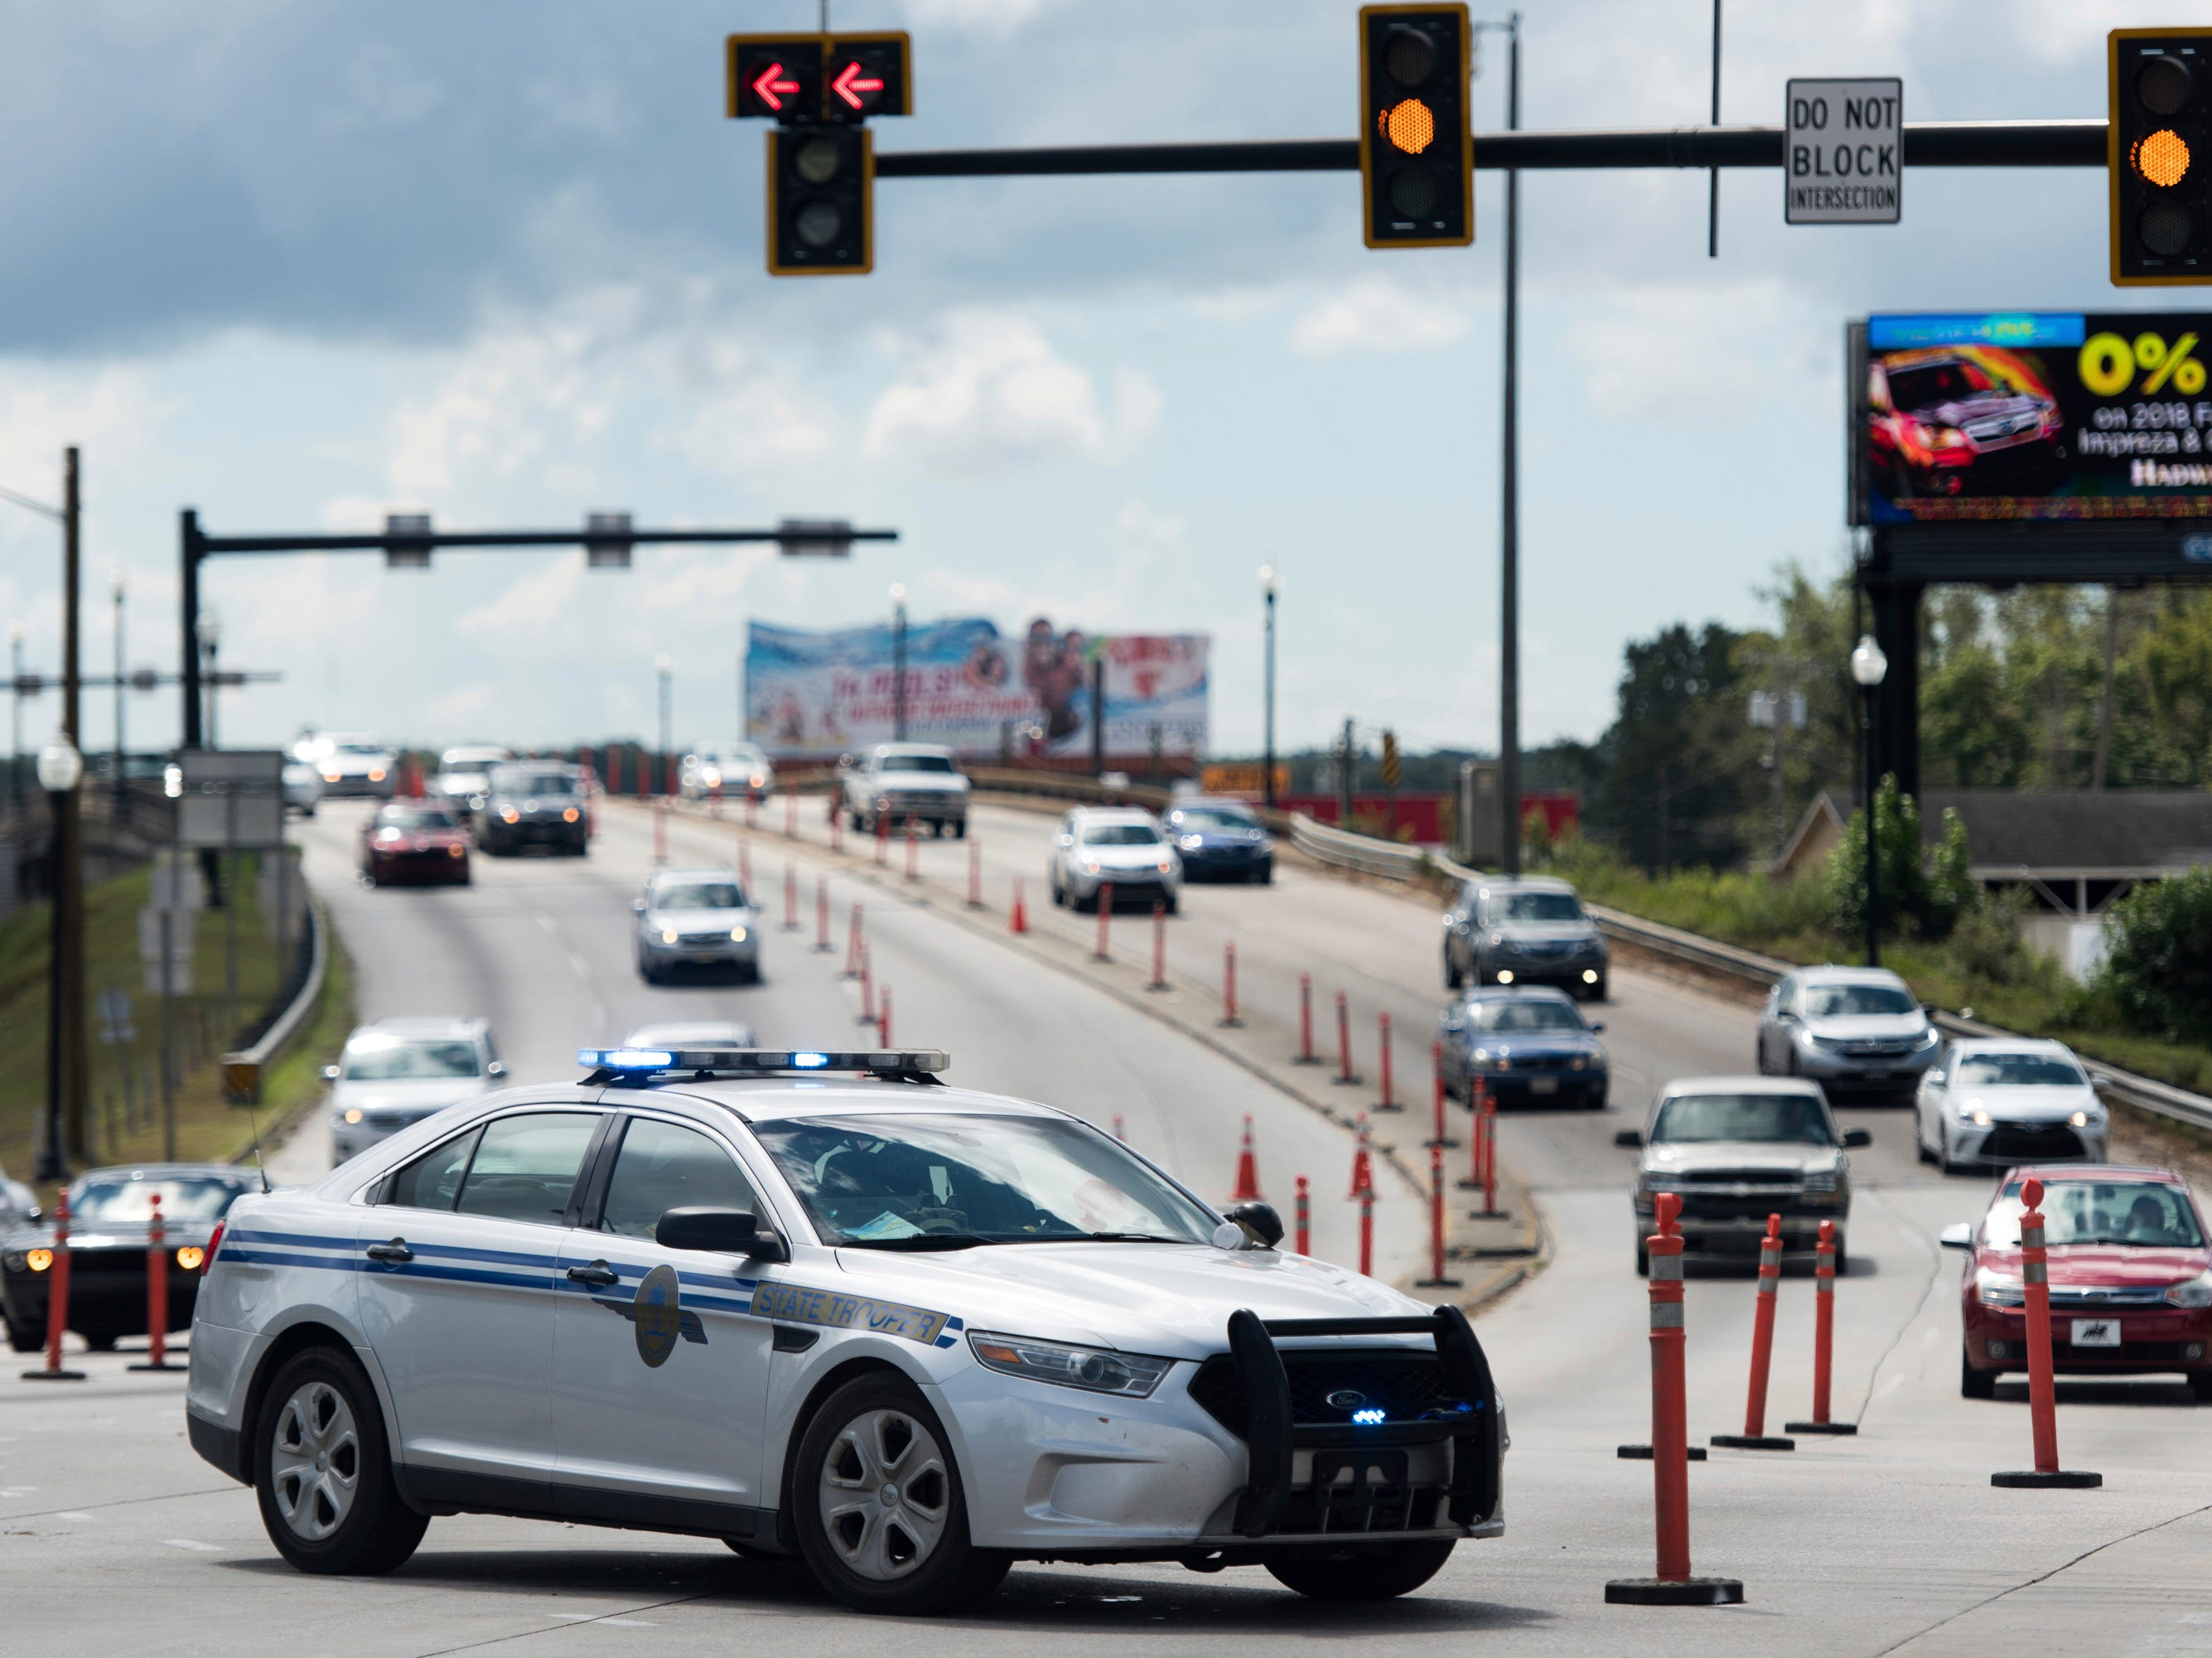 A South Carolina state trooper directs counterflow traffic traveling west from Myrtle Beach on U.S. 501 as Hurricane Florence approaches the East Coast, Wednesday, Sept. 12, 2018, in Conway, S.C.